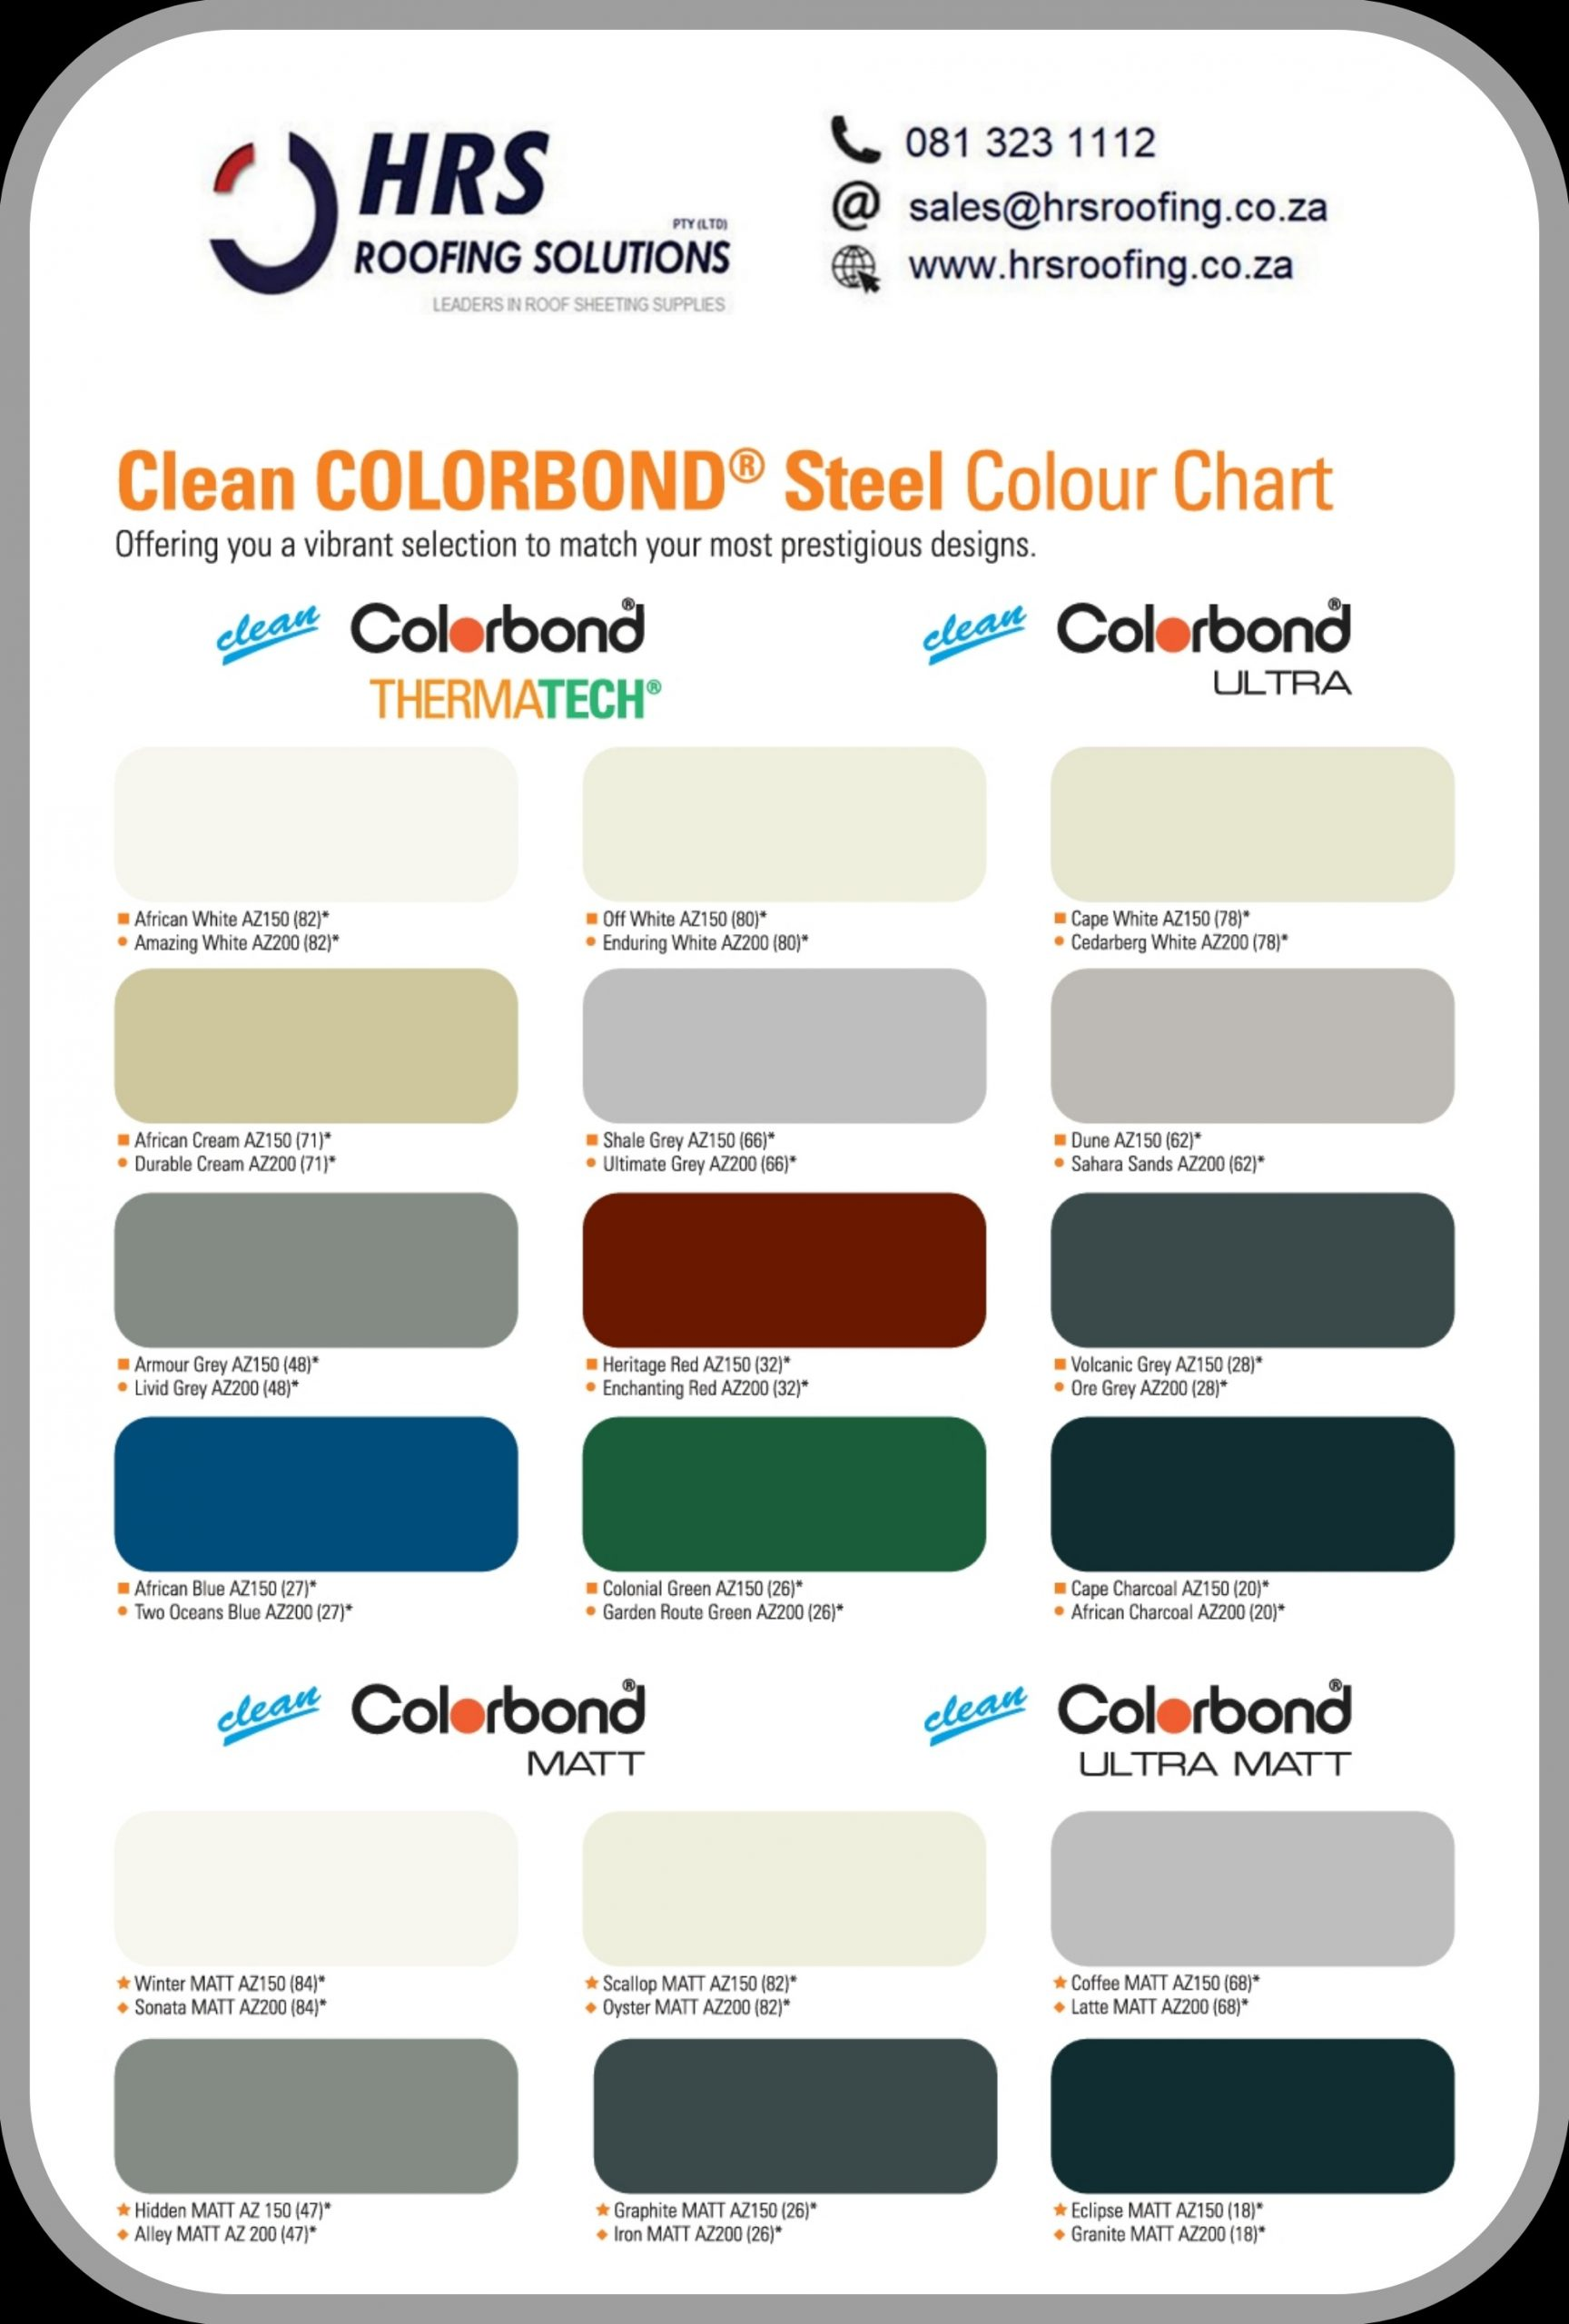 Hrs roof sheeting suppliers Colorbond roof sheeting cape town scaled - Roofing Gallery